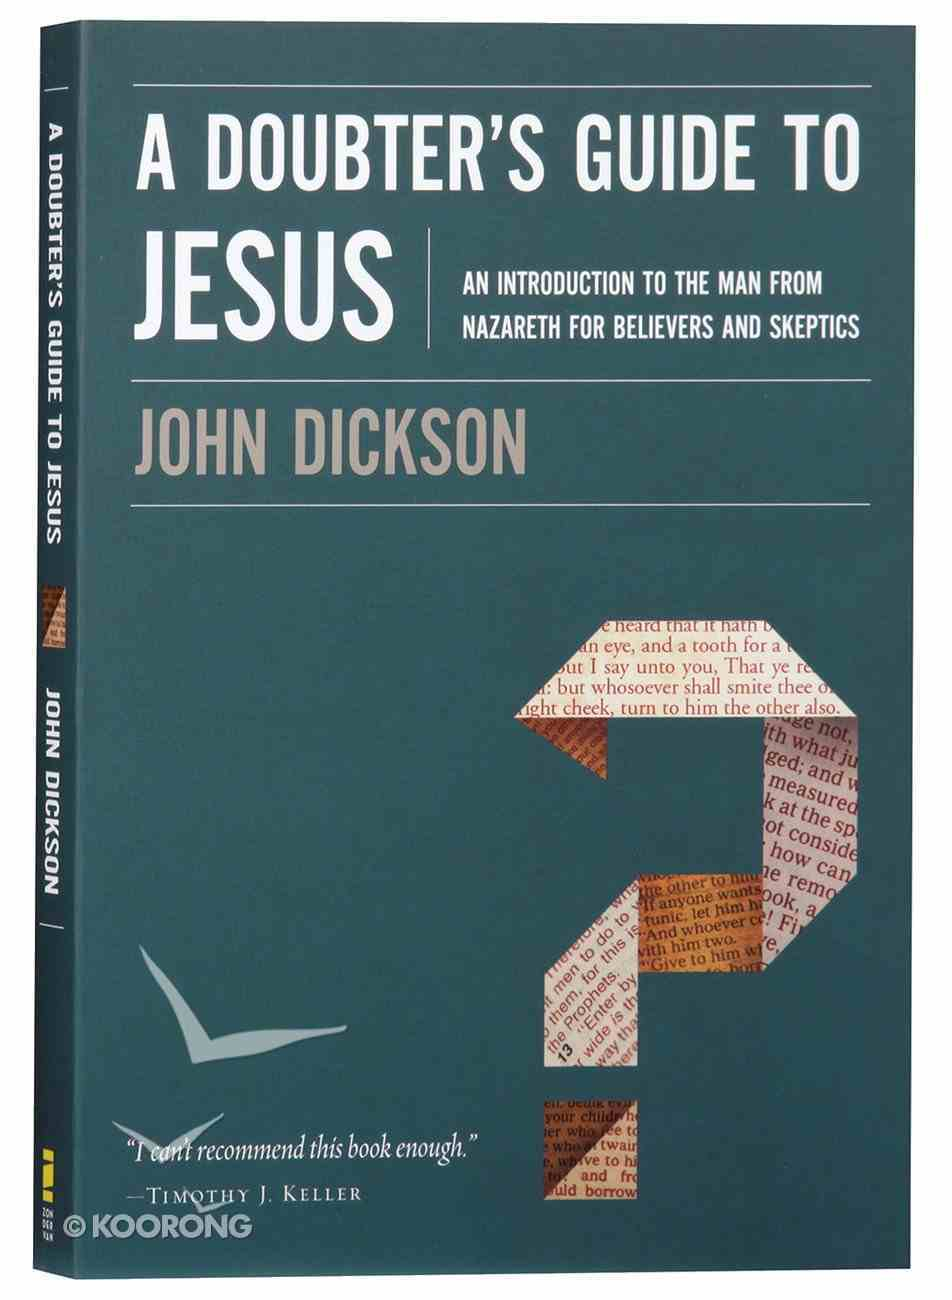 A Doubter's Guide to Jesus: An Introduction to the Man From Nazareth For Believers and Skeptics Paperback